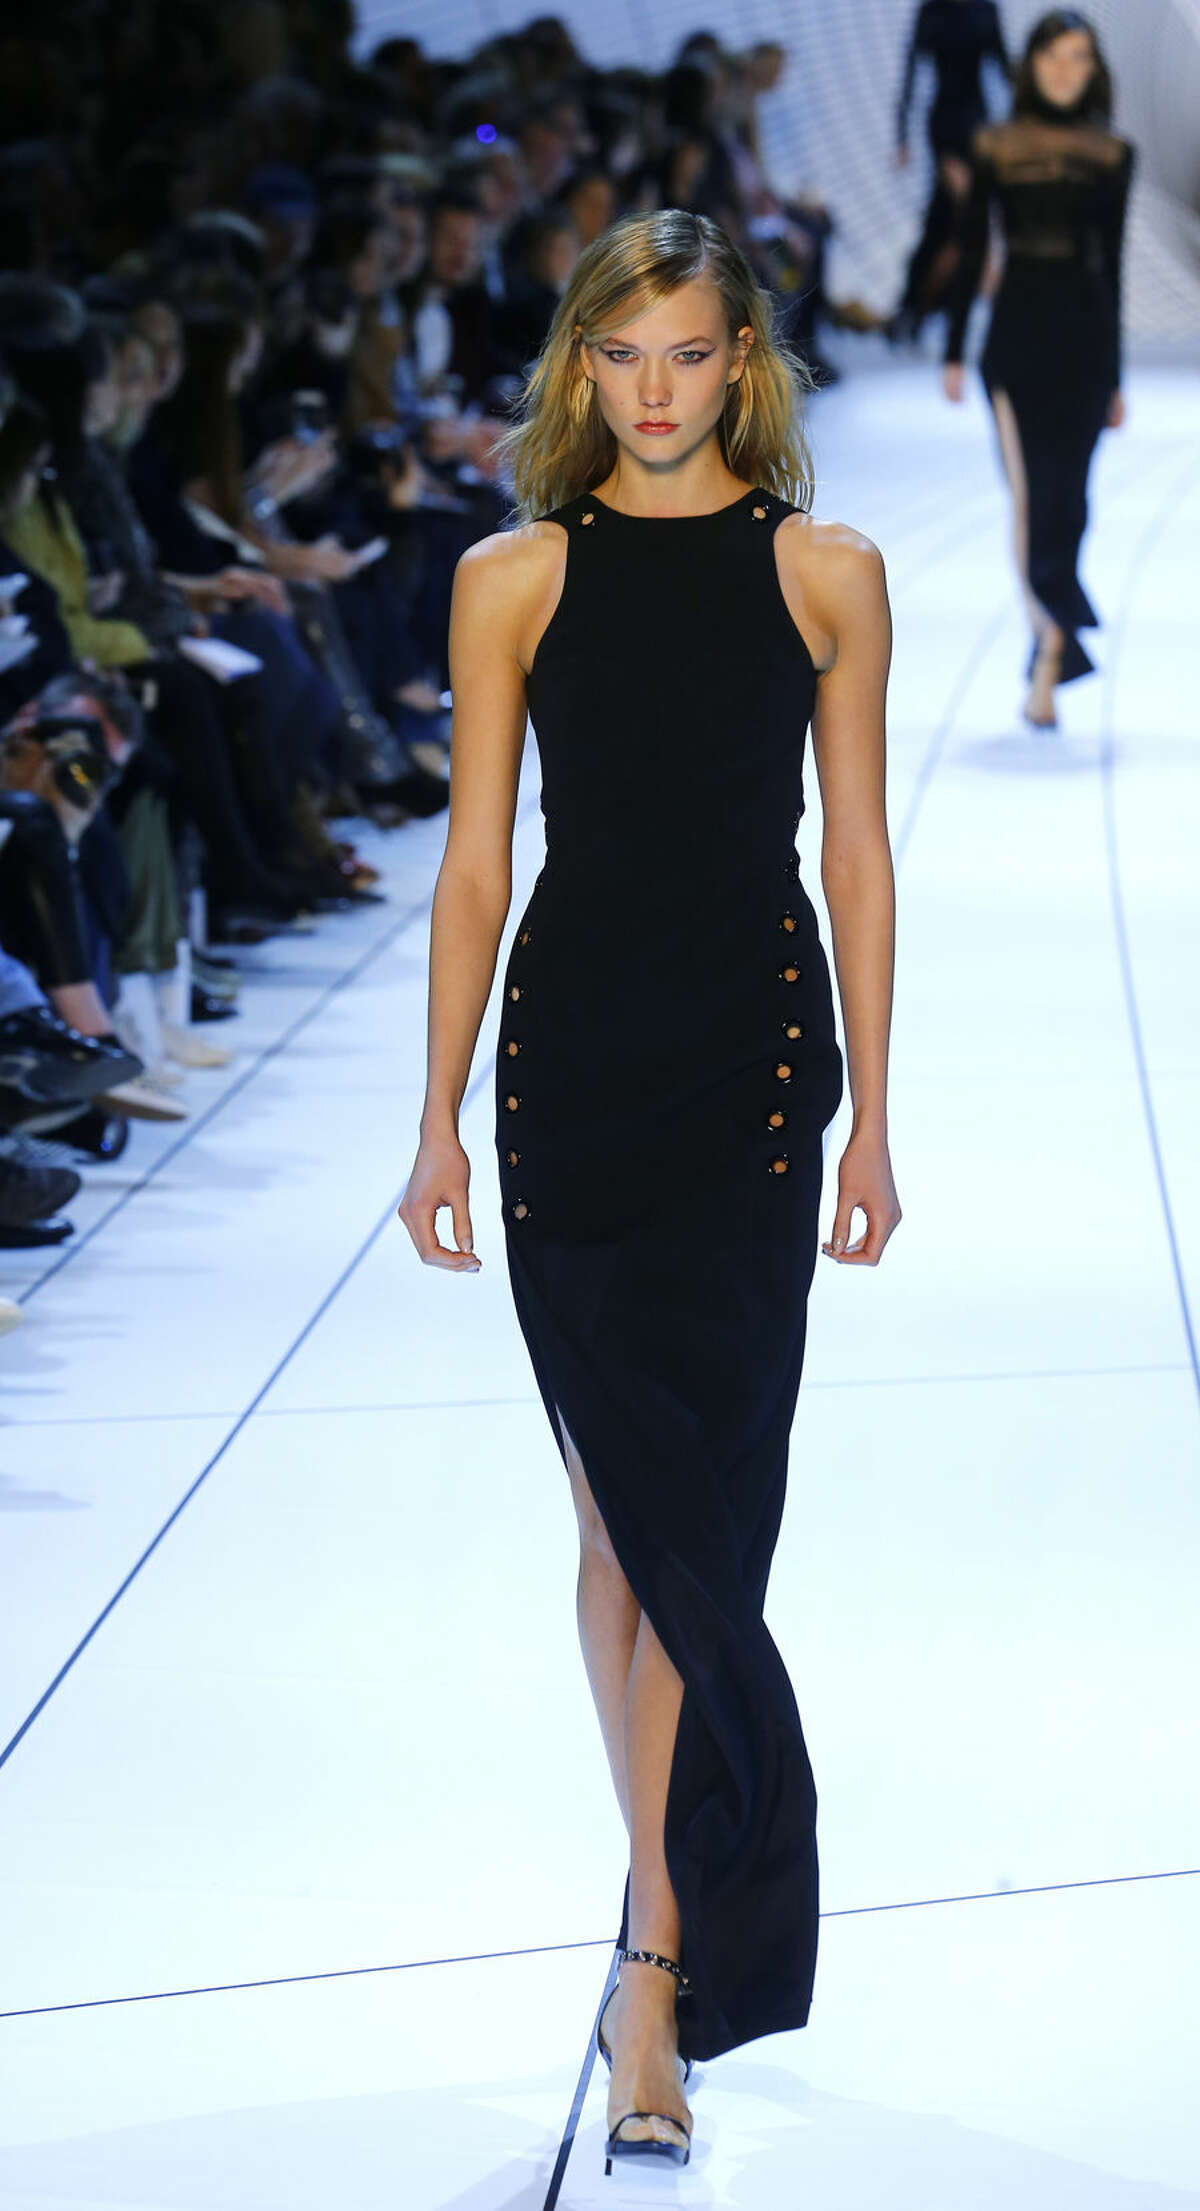 Model Karlie Kloss wears a creation for Mugler's ready to wear fall-winter 2015-2016 fashion collection during Paris fashion week, Saturday, March 7, 2015, Paris, France (AP Photo/Jacques Brinon)